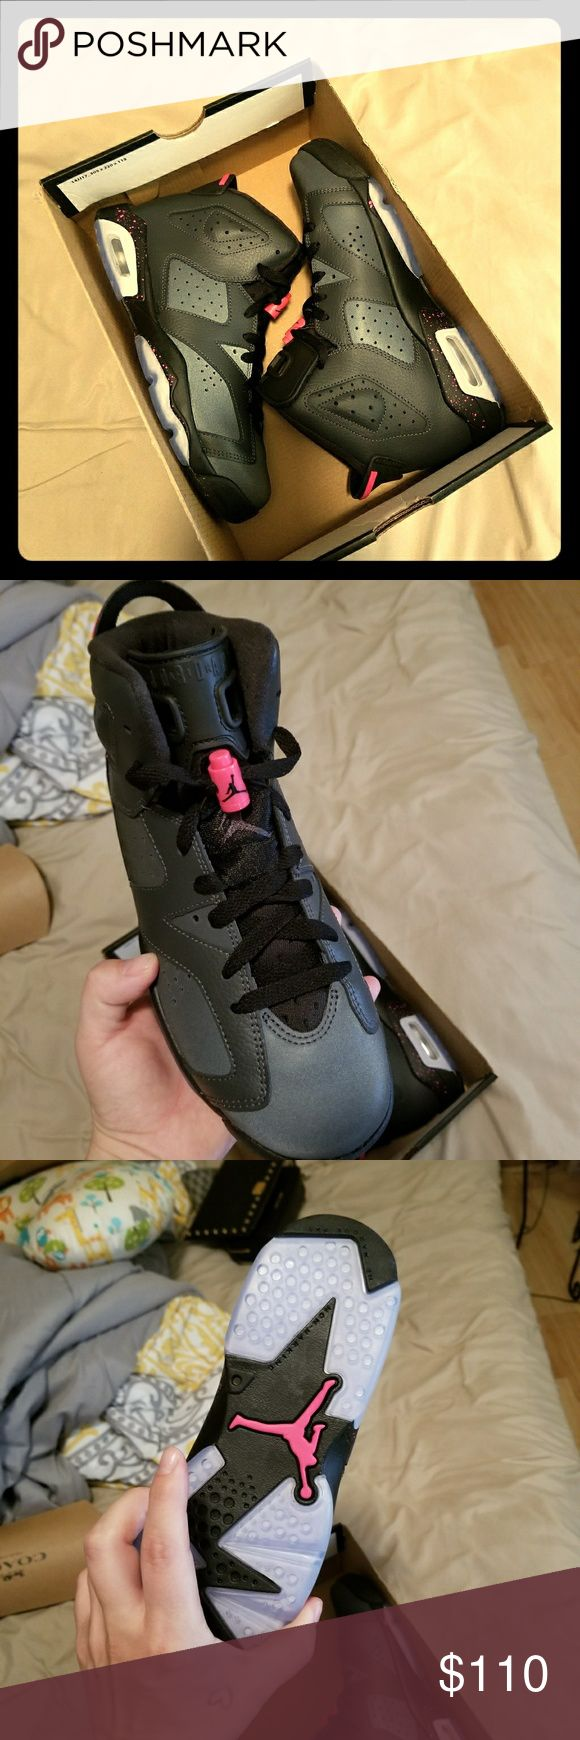 Jordan retro 6 hyper pink Brand new in the box. Never worn Jordan Shoes Athletic Shoes